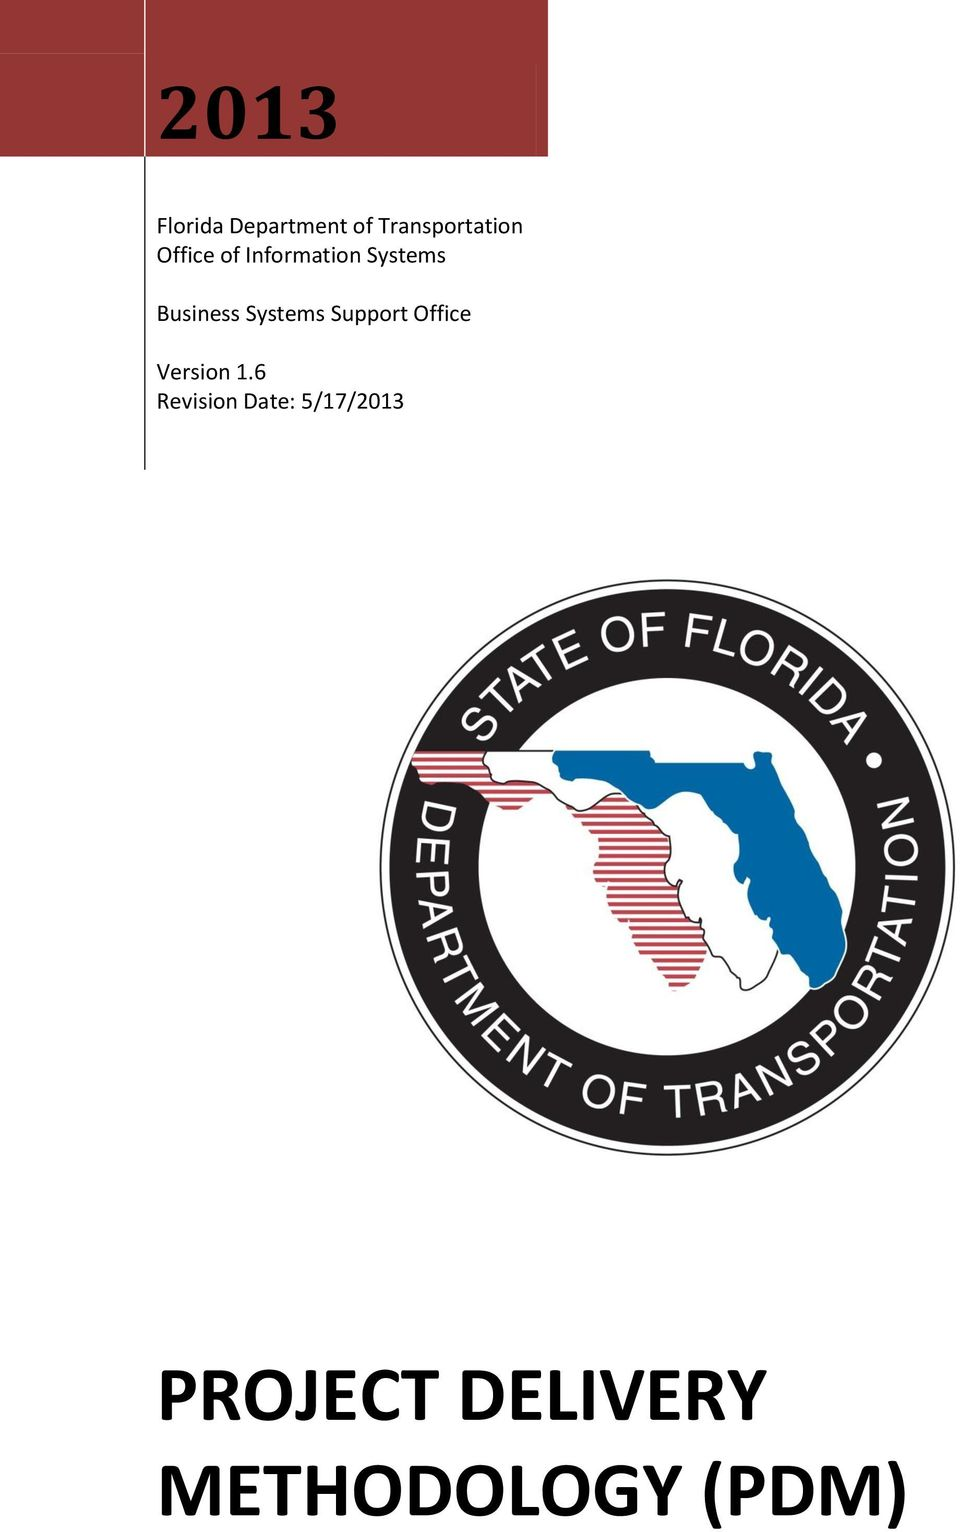 PROJECT DELIVERY METHODOLOGY (PDM) Florida Department of